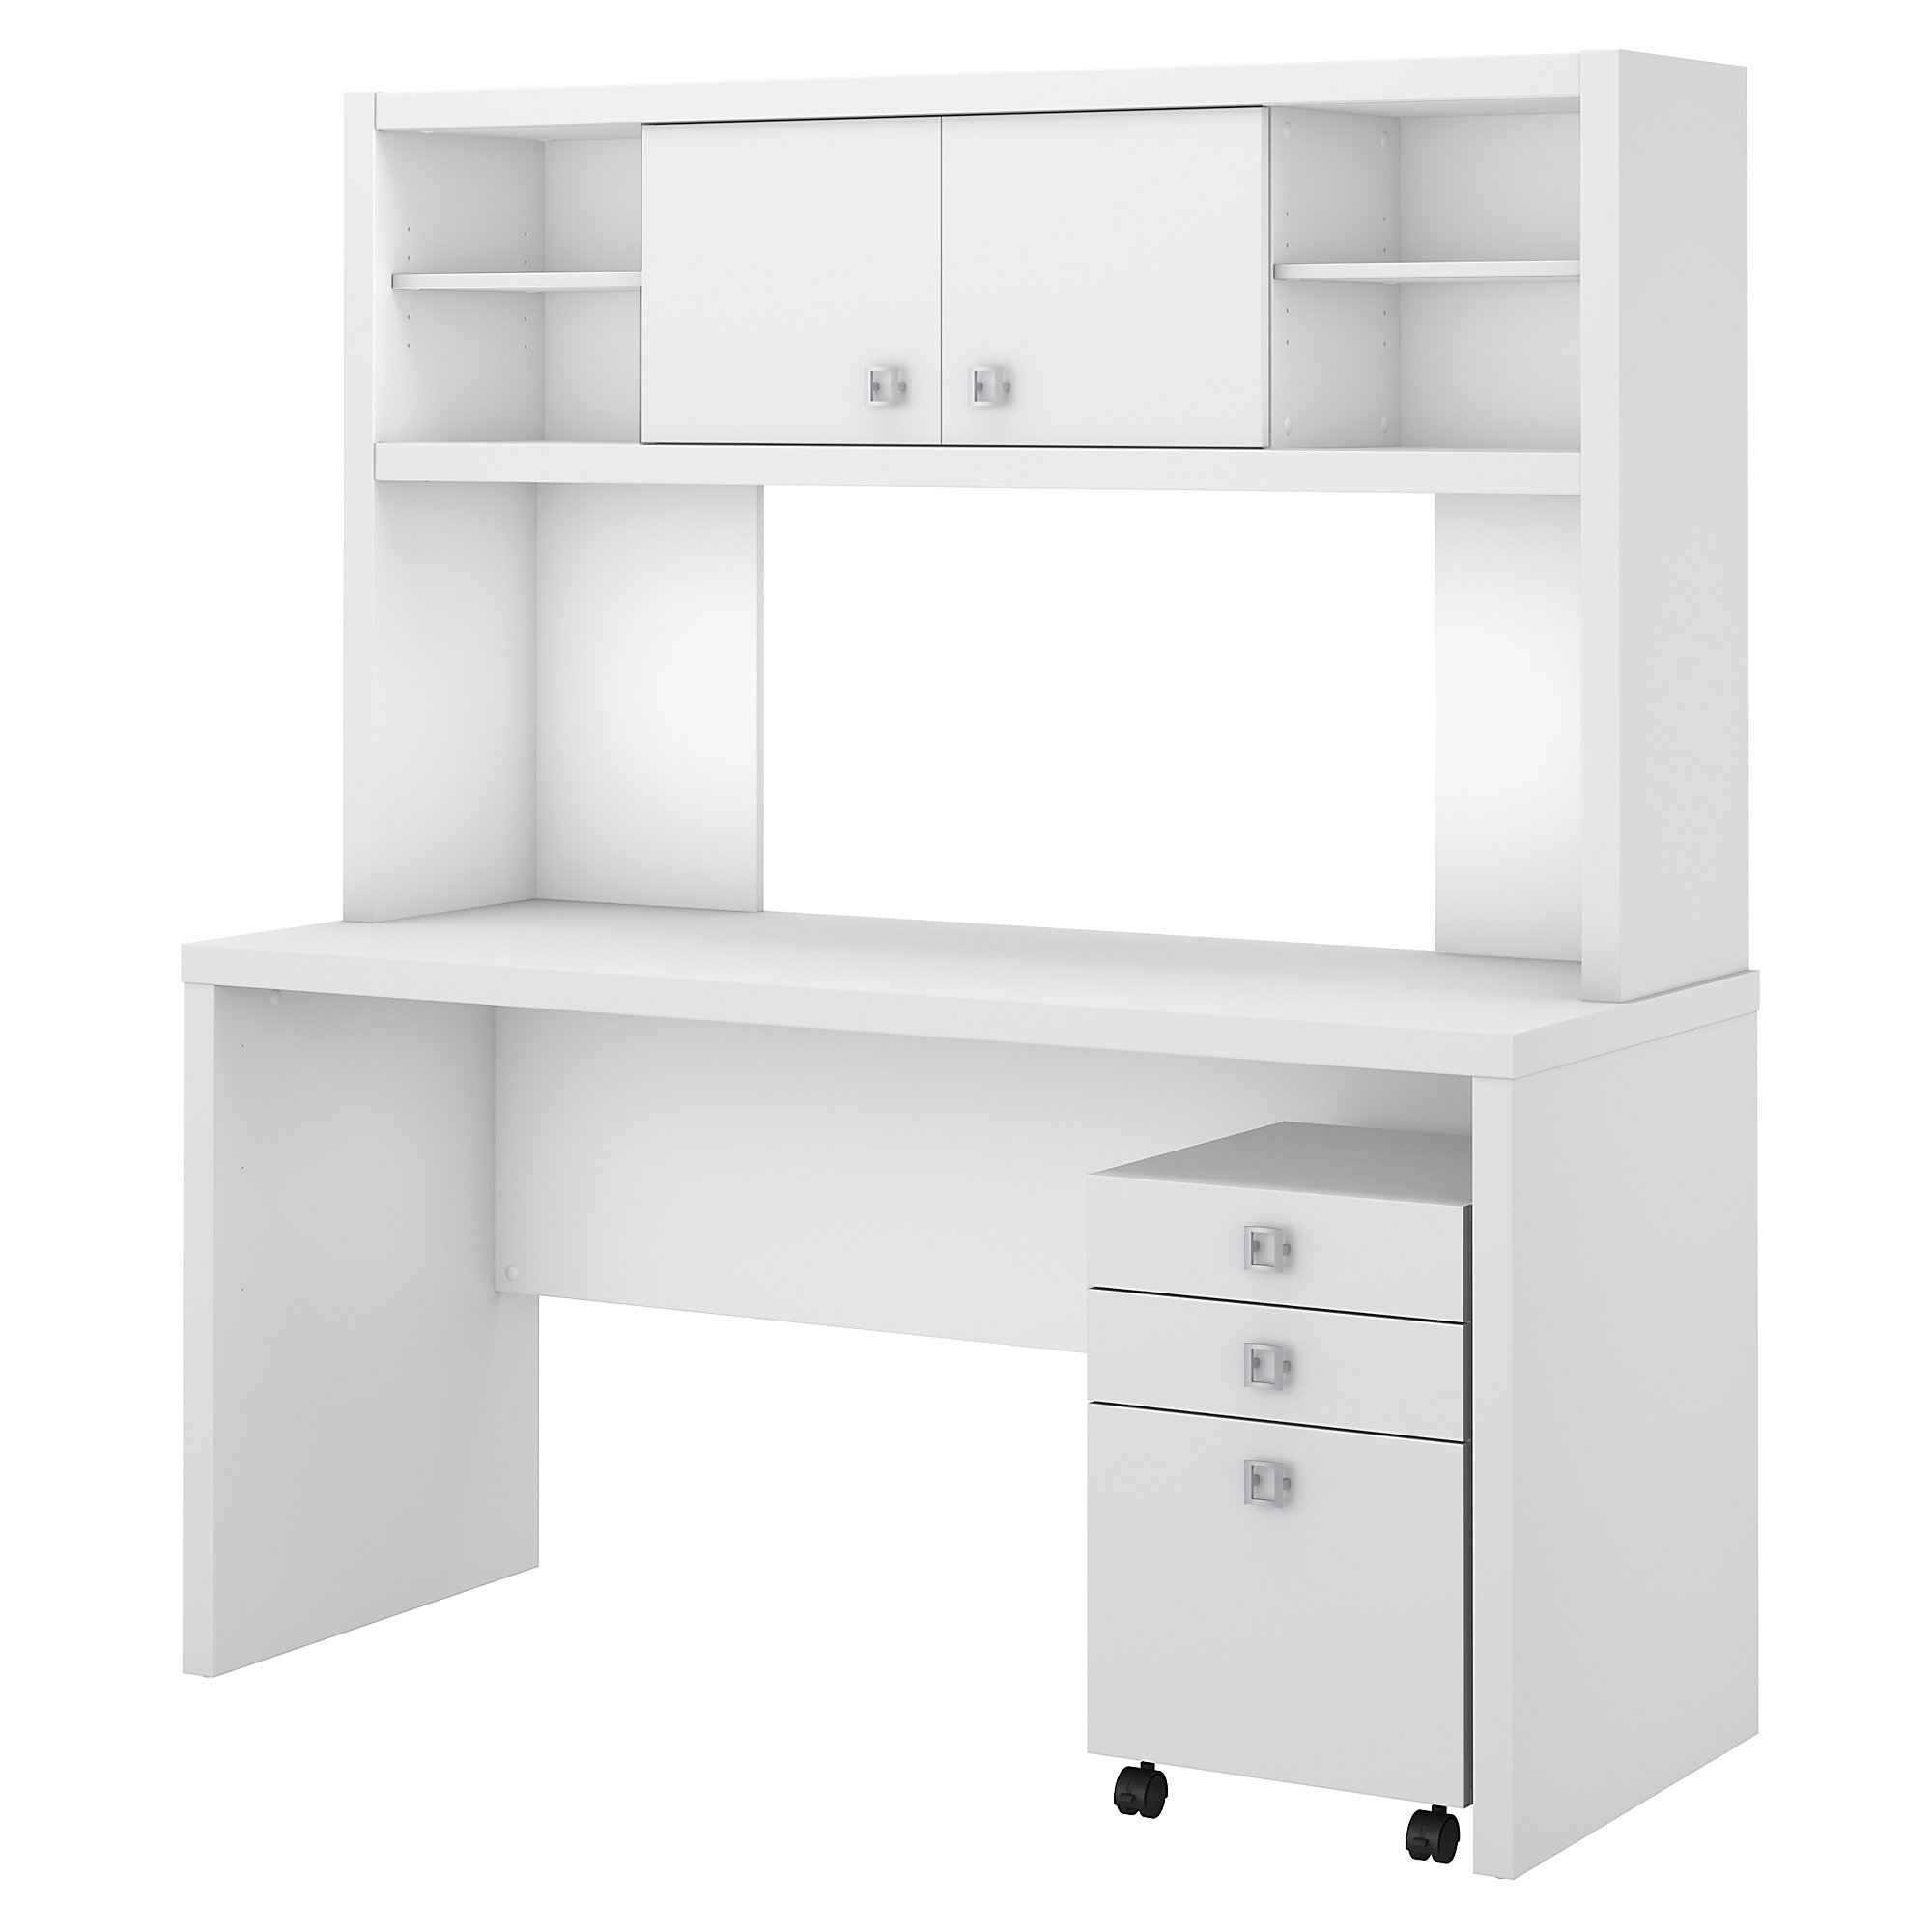 ech006 office by kathy ireland echo pure white configuration